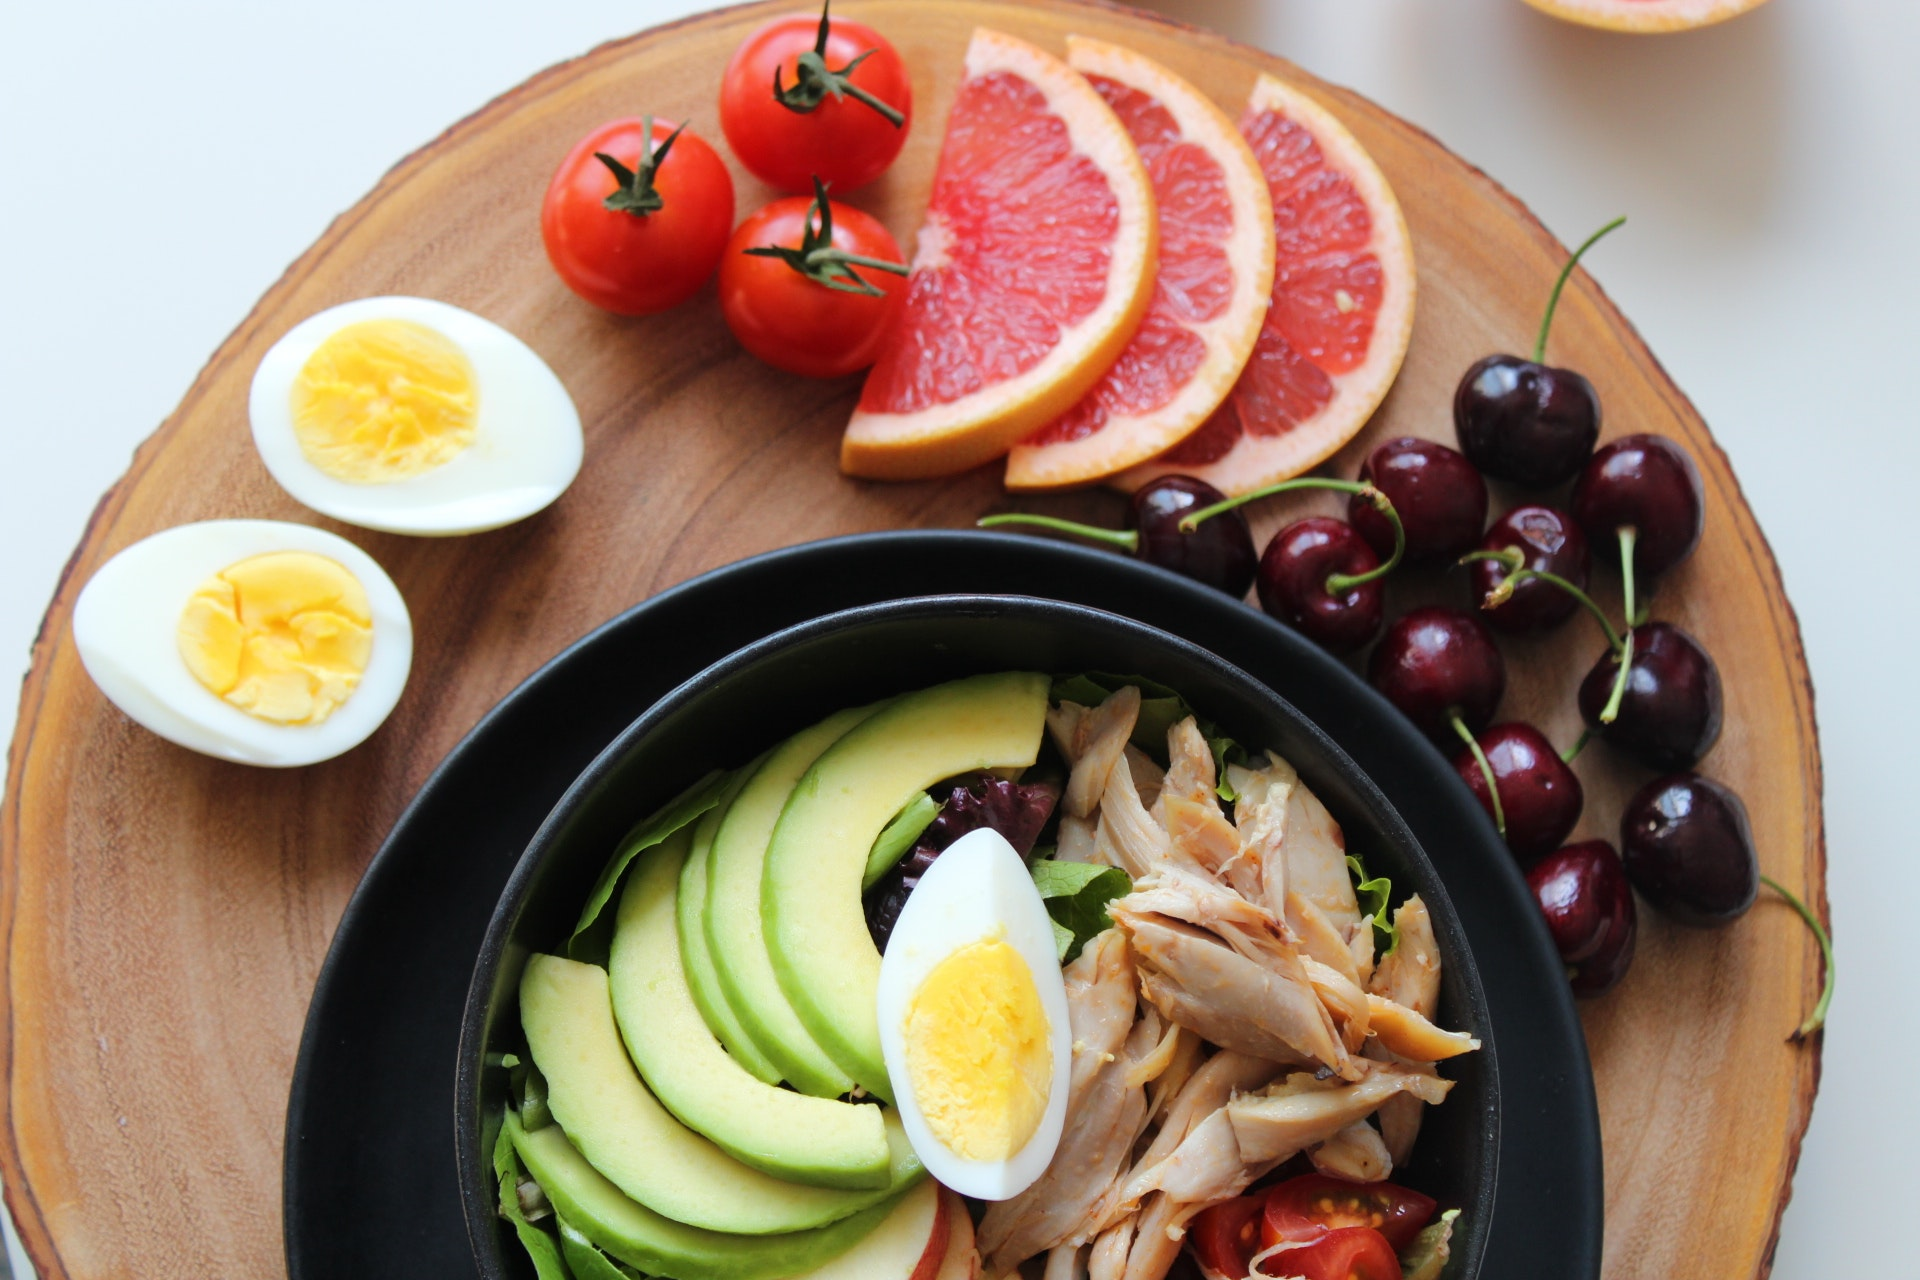 eat more to lose weight not less